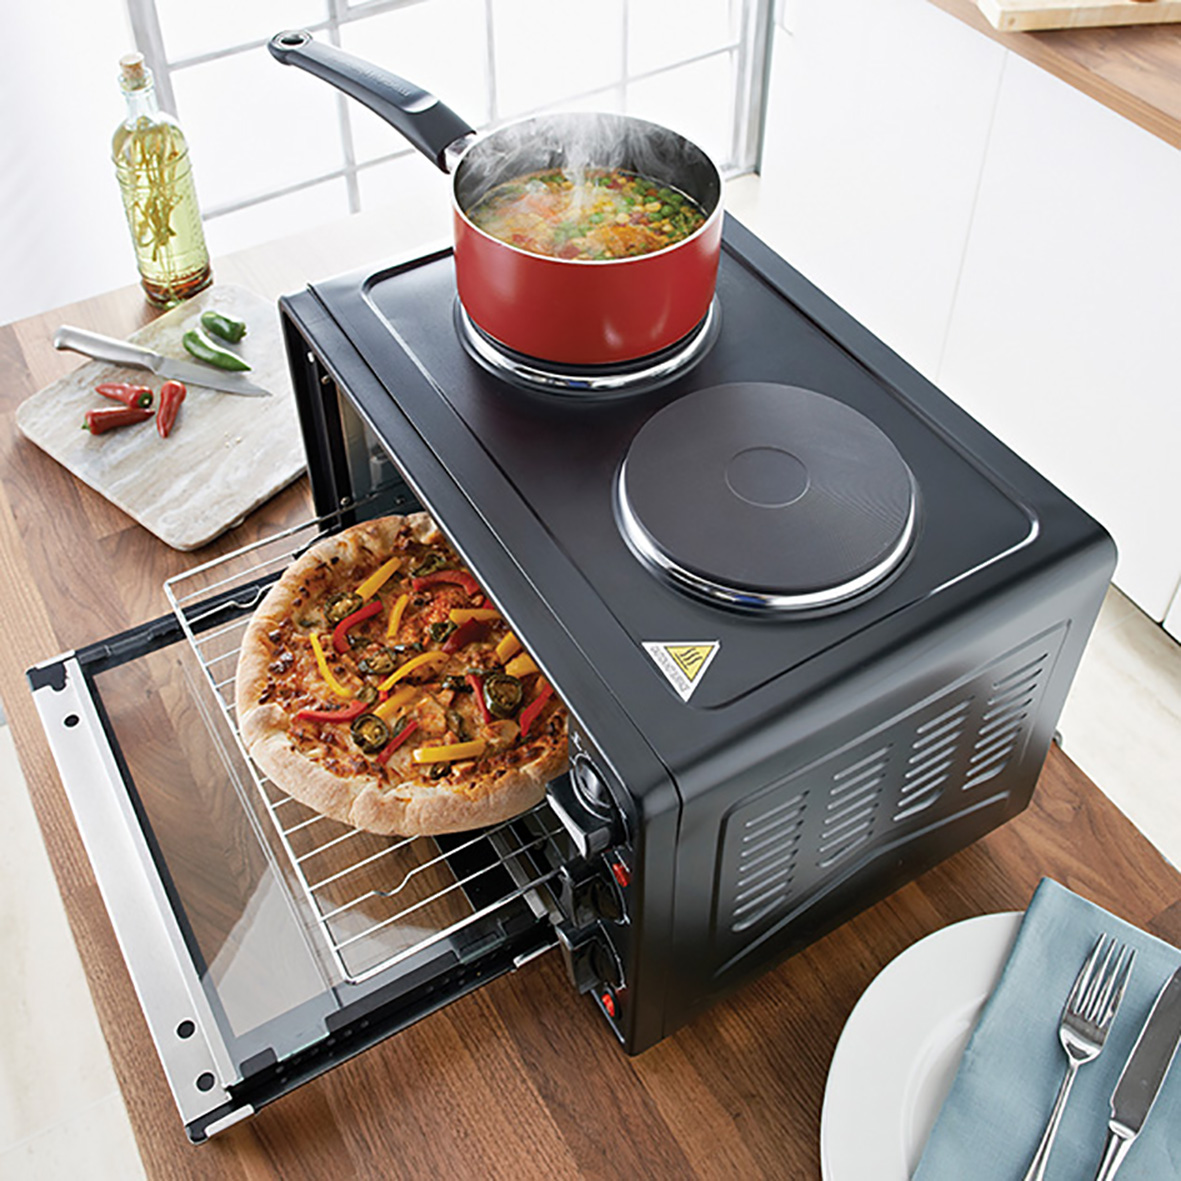 Twin Hob Convection Oven - Compact space saving solution, grill & rotisserie function with oven and twin hobs options for all round cooking.